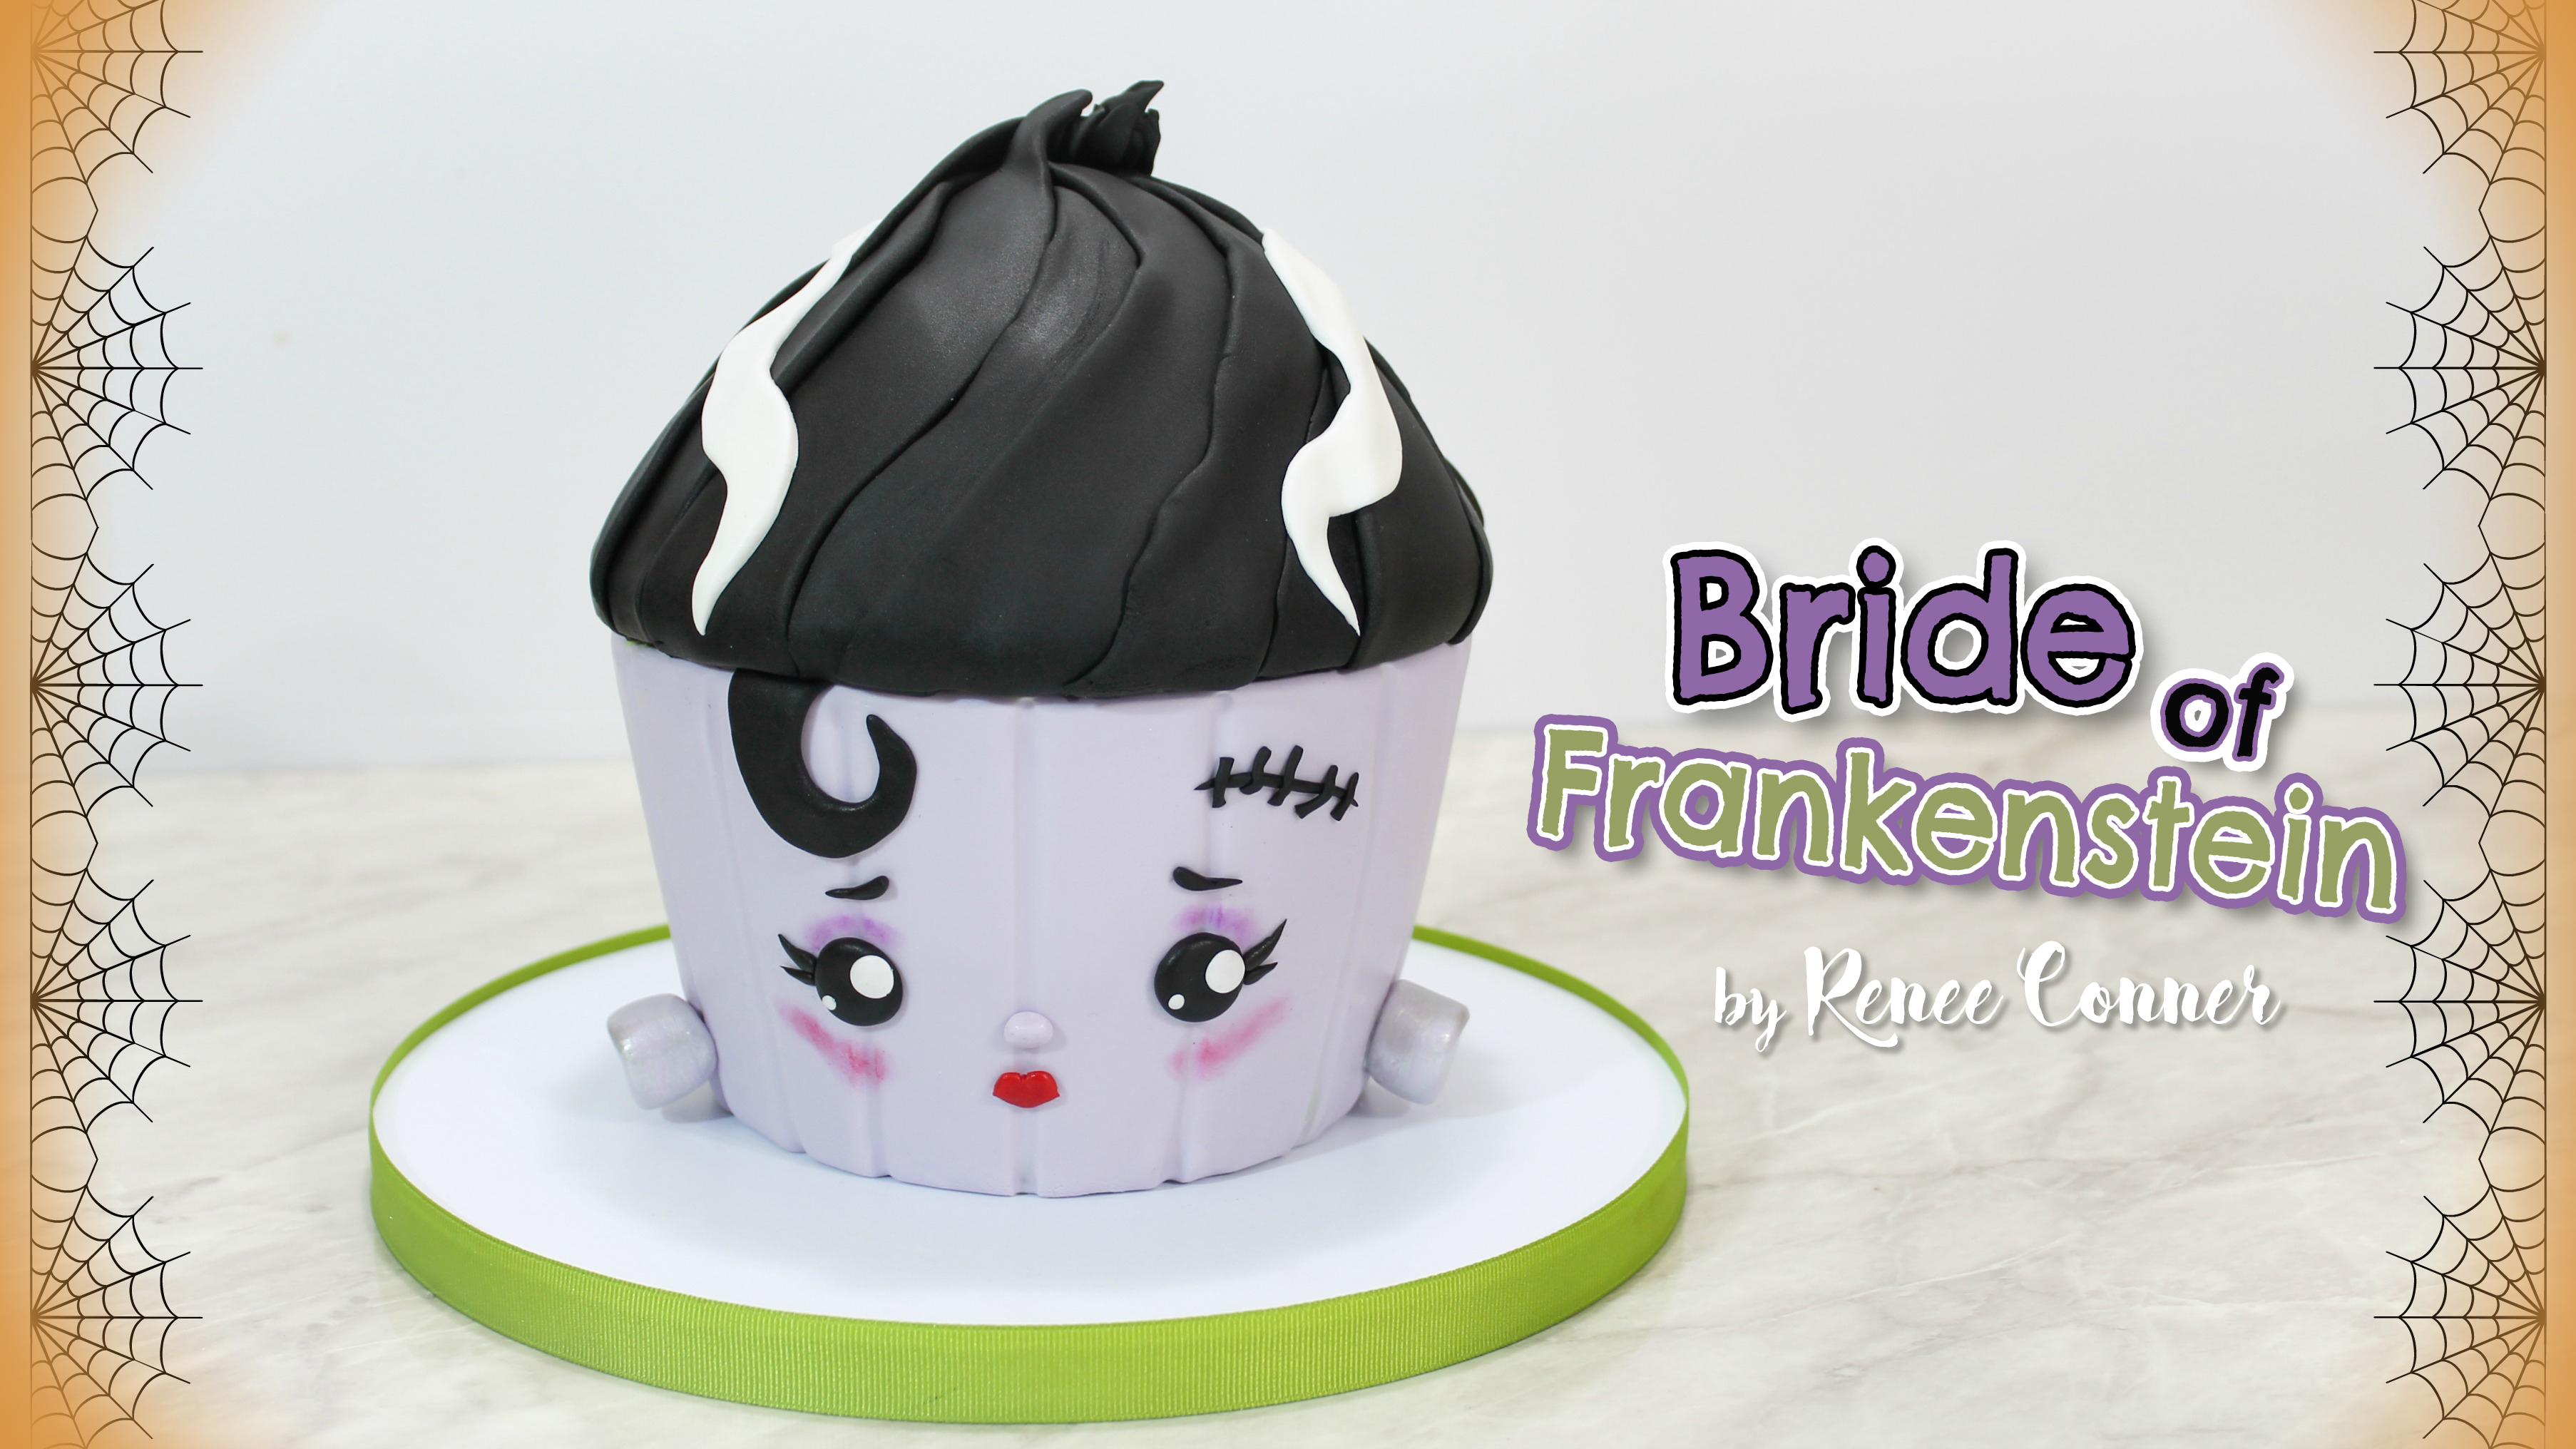 Bride of Frankie Giant Cupcake!